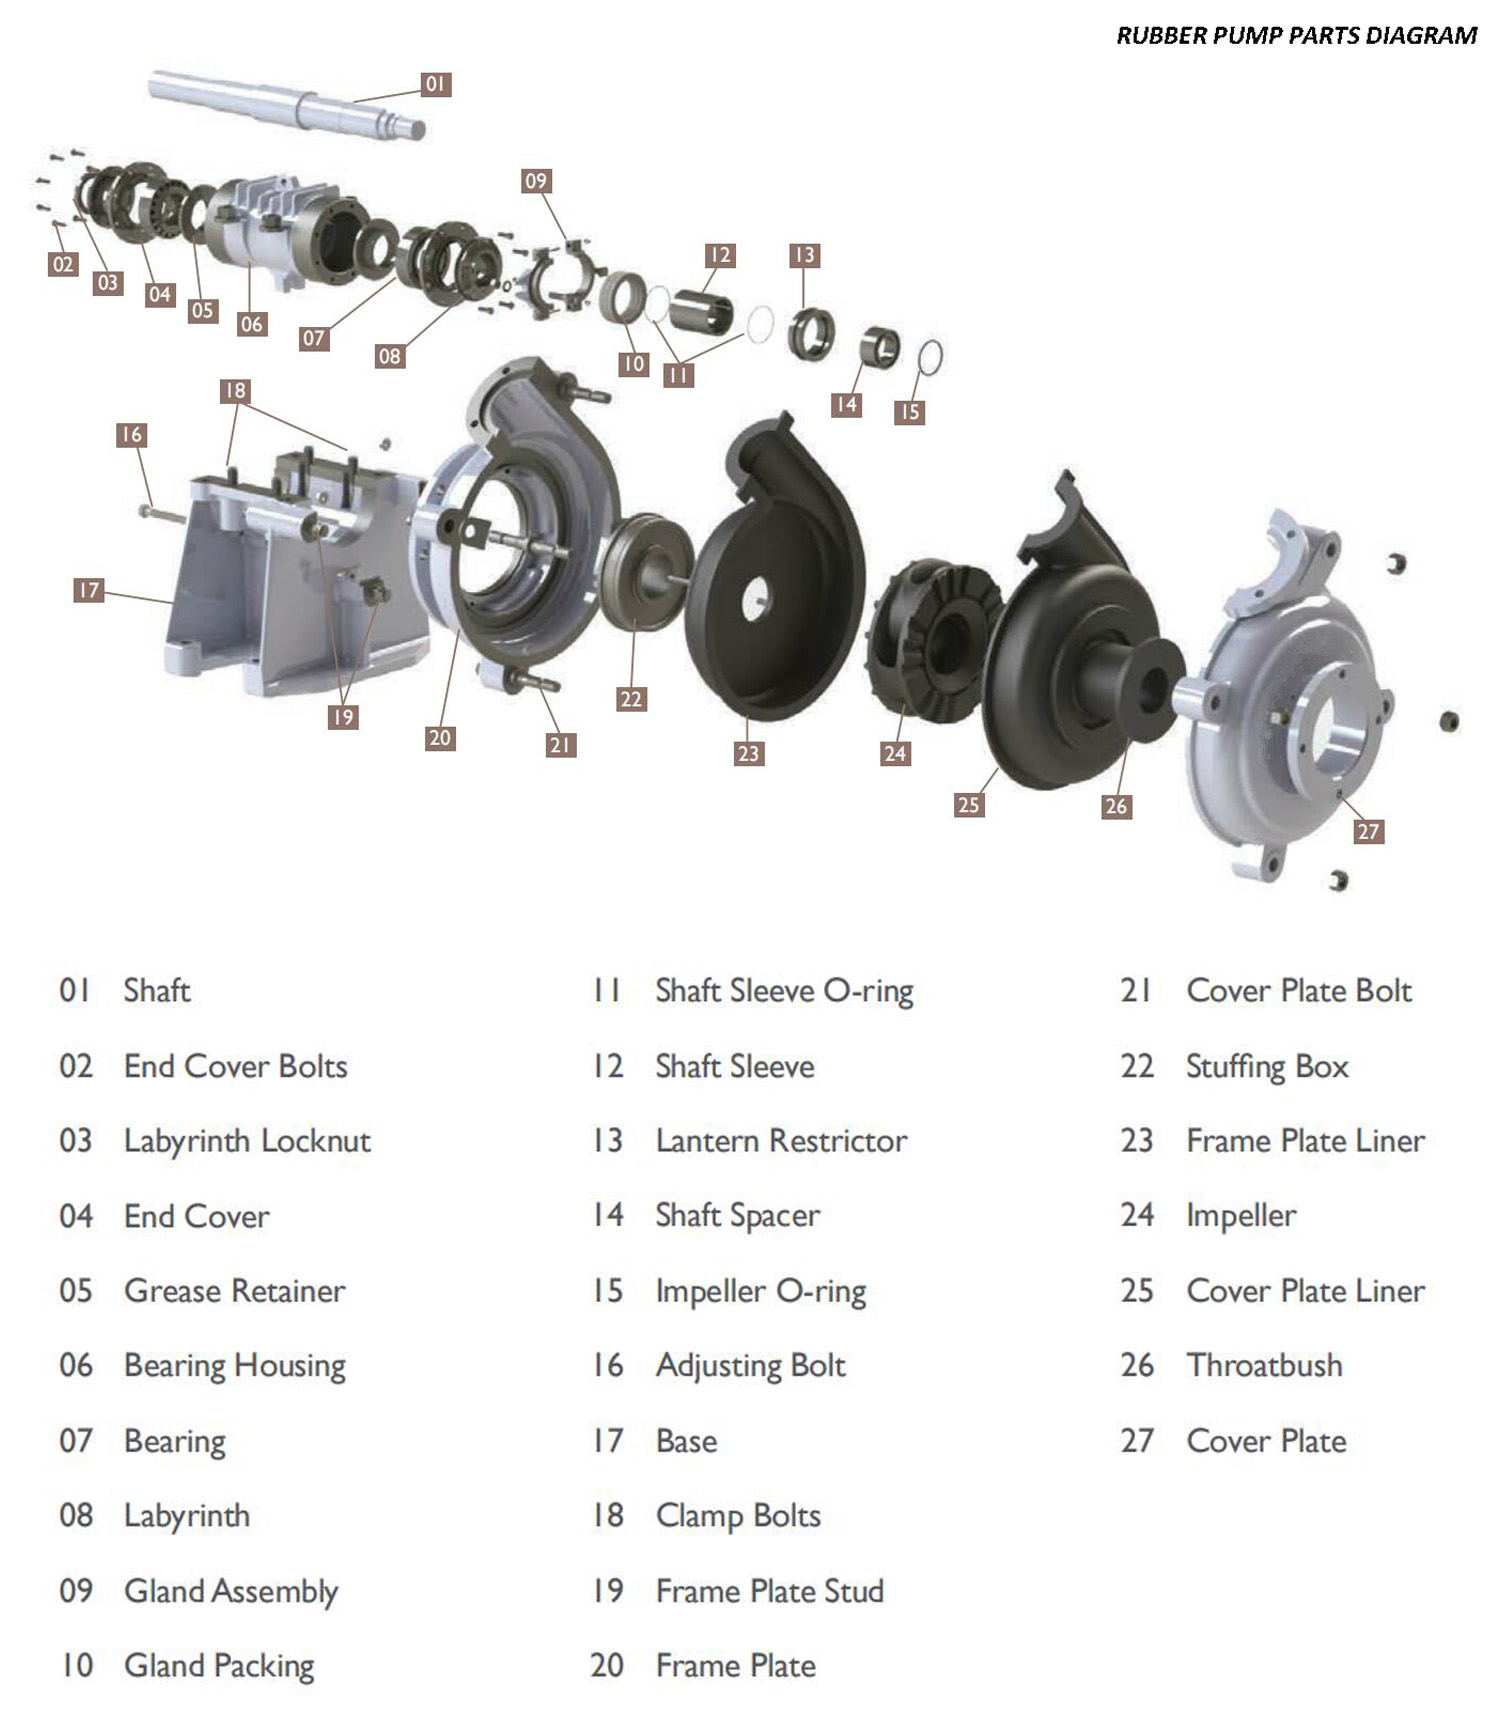 RUBBER PUMP PARTS DIAGRAM